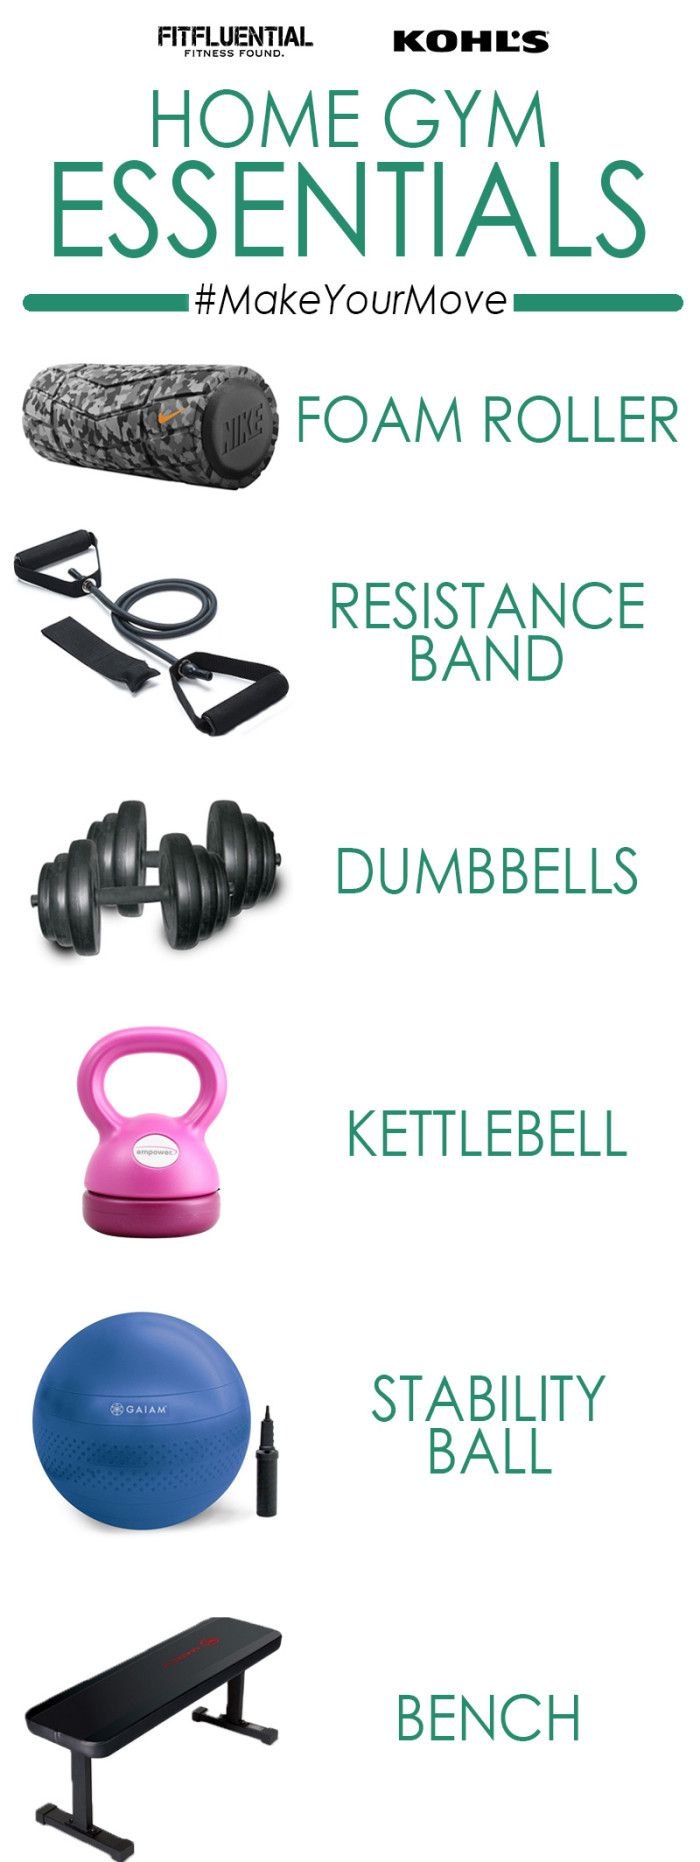 14 Best Home Gym Images On Pinterest